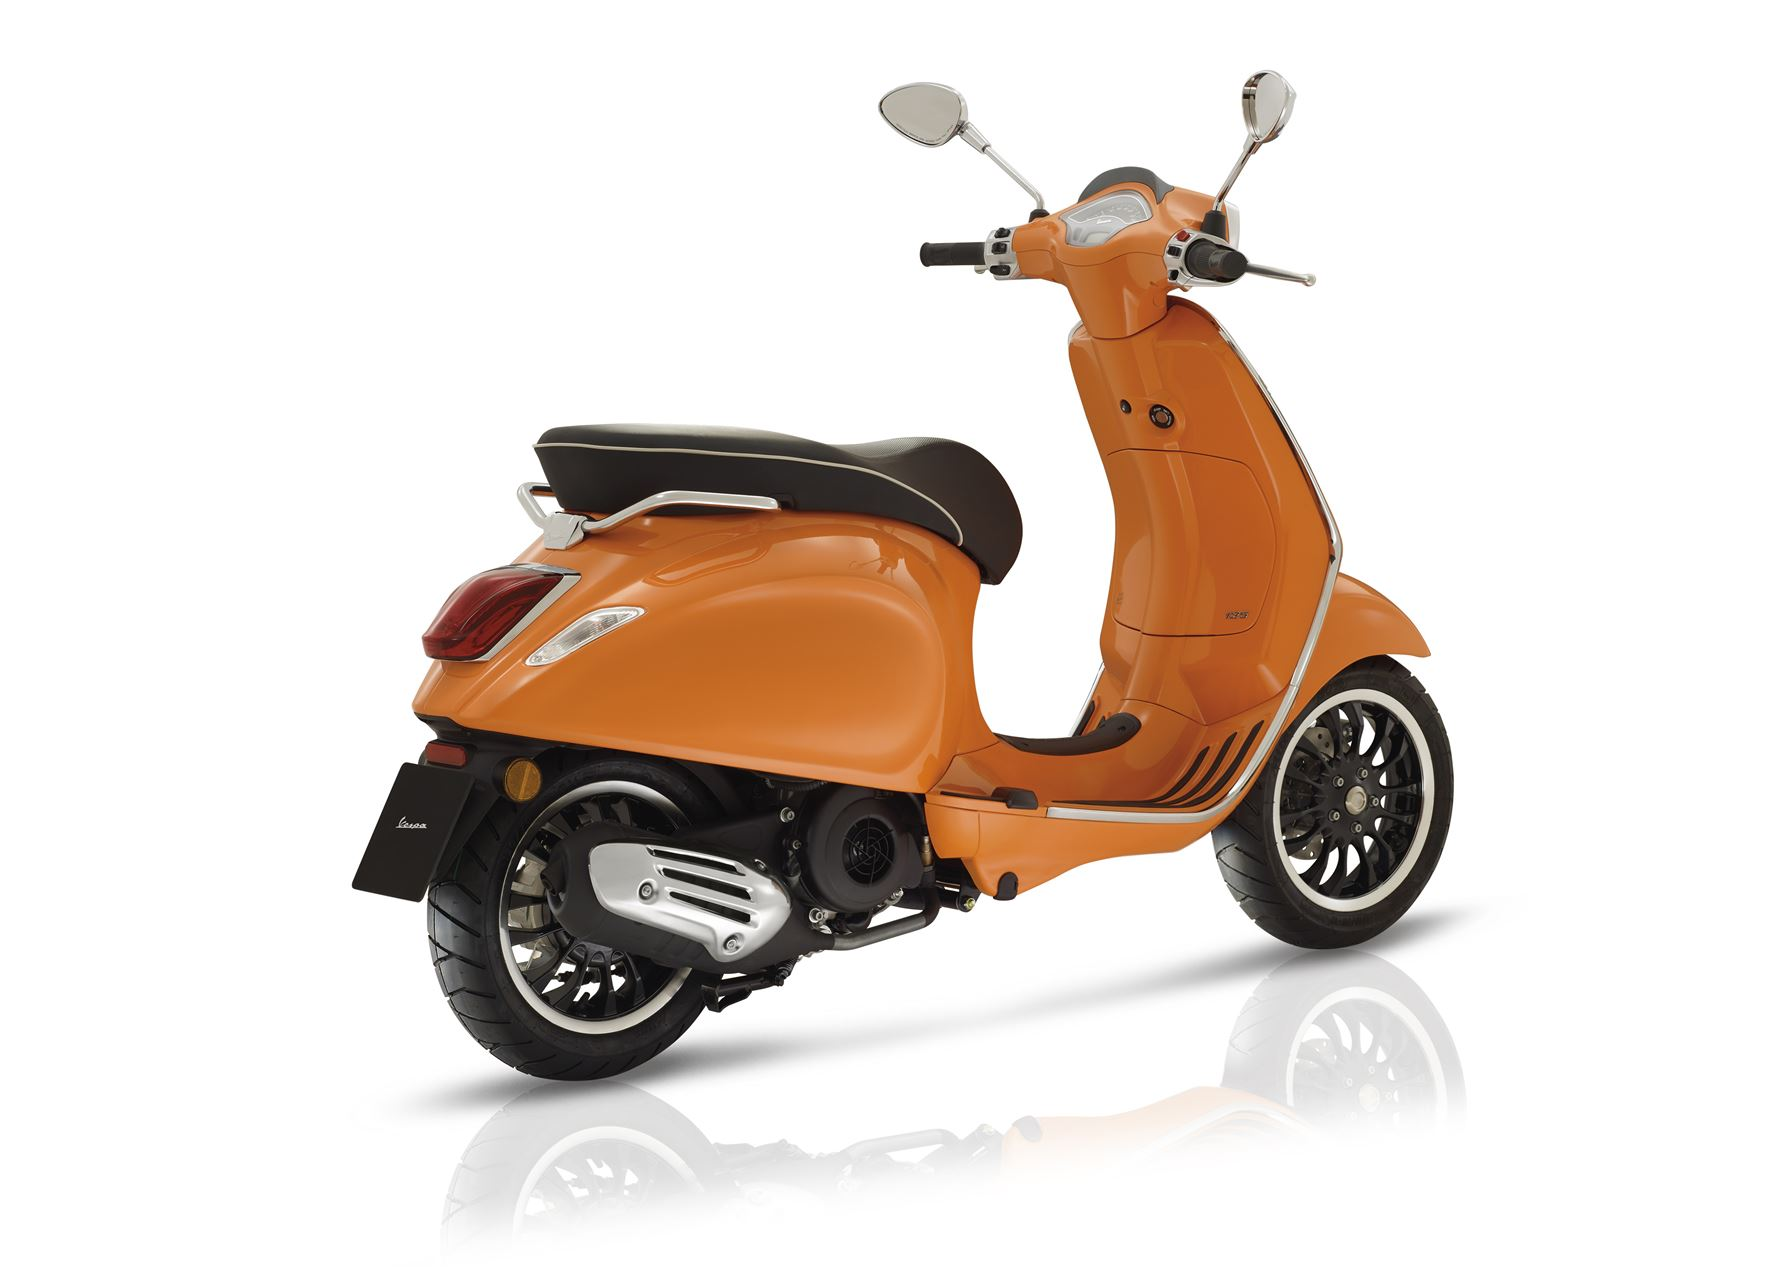 vespa sprint 125 scooter gama 125cc andar de moto. Black Bedroom Furniture Sets. Home Design Ideas